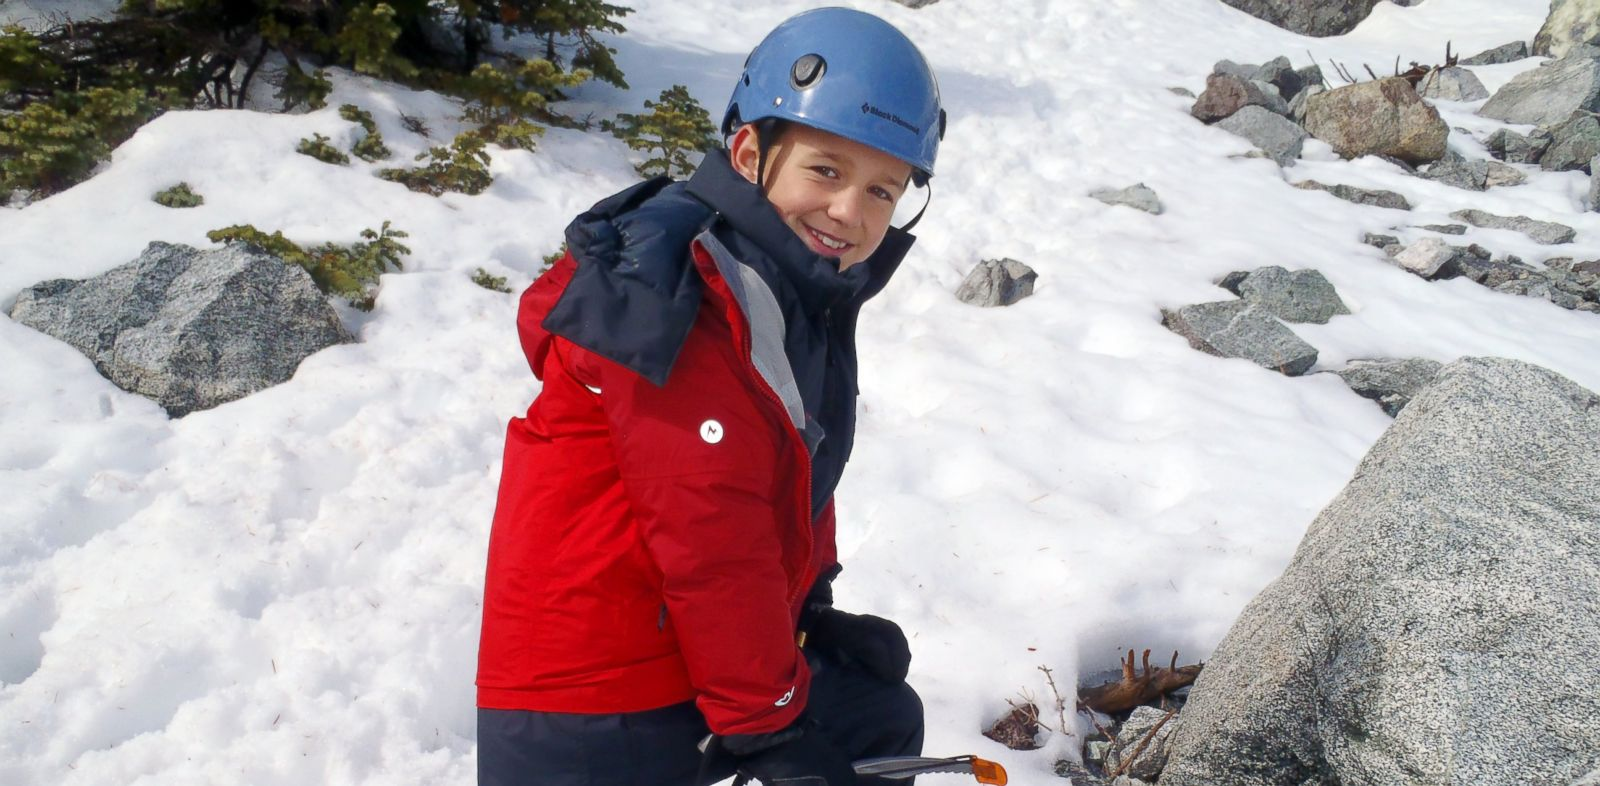 PHOTO: Tyler Armstrong, 9, is set to make the icy climb up Mount Aconcagua